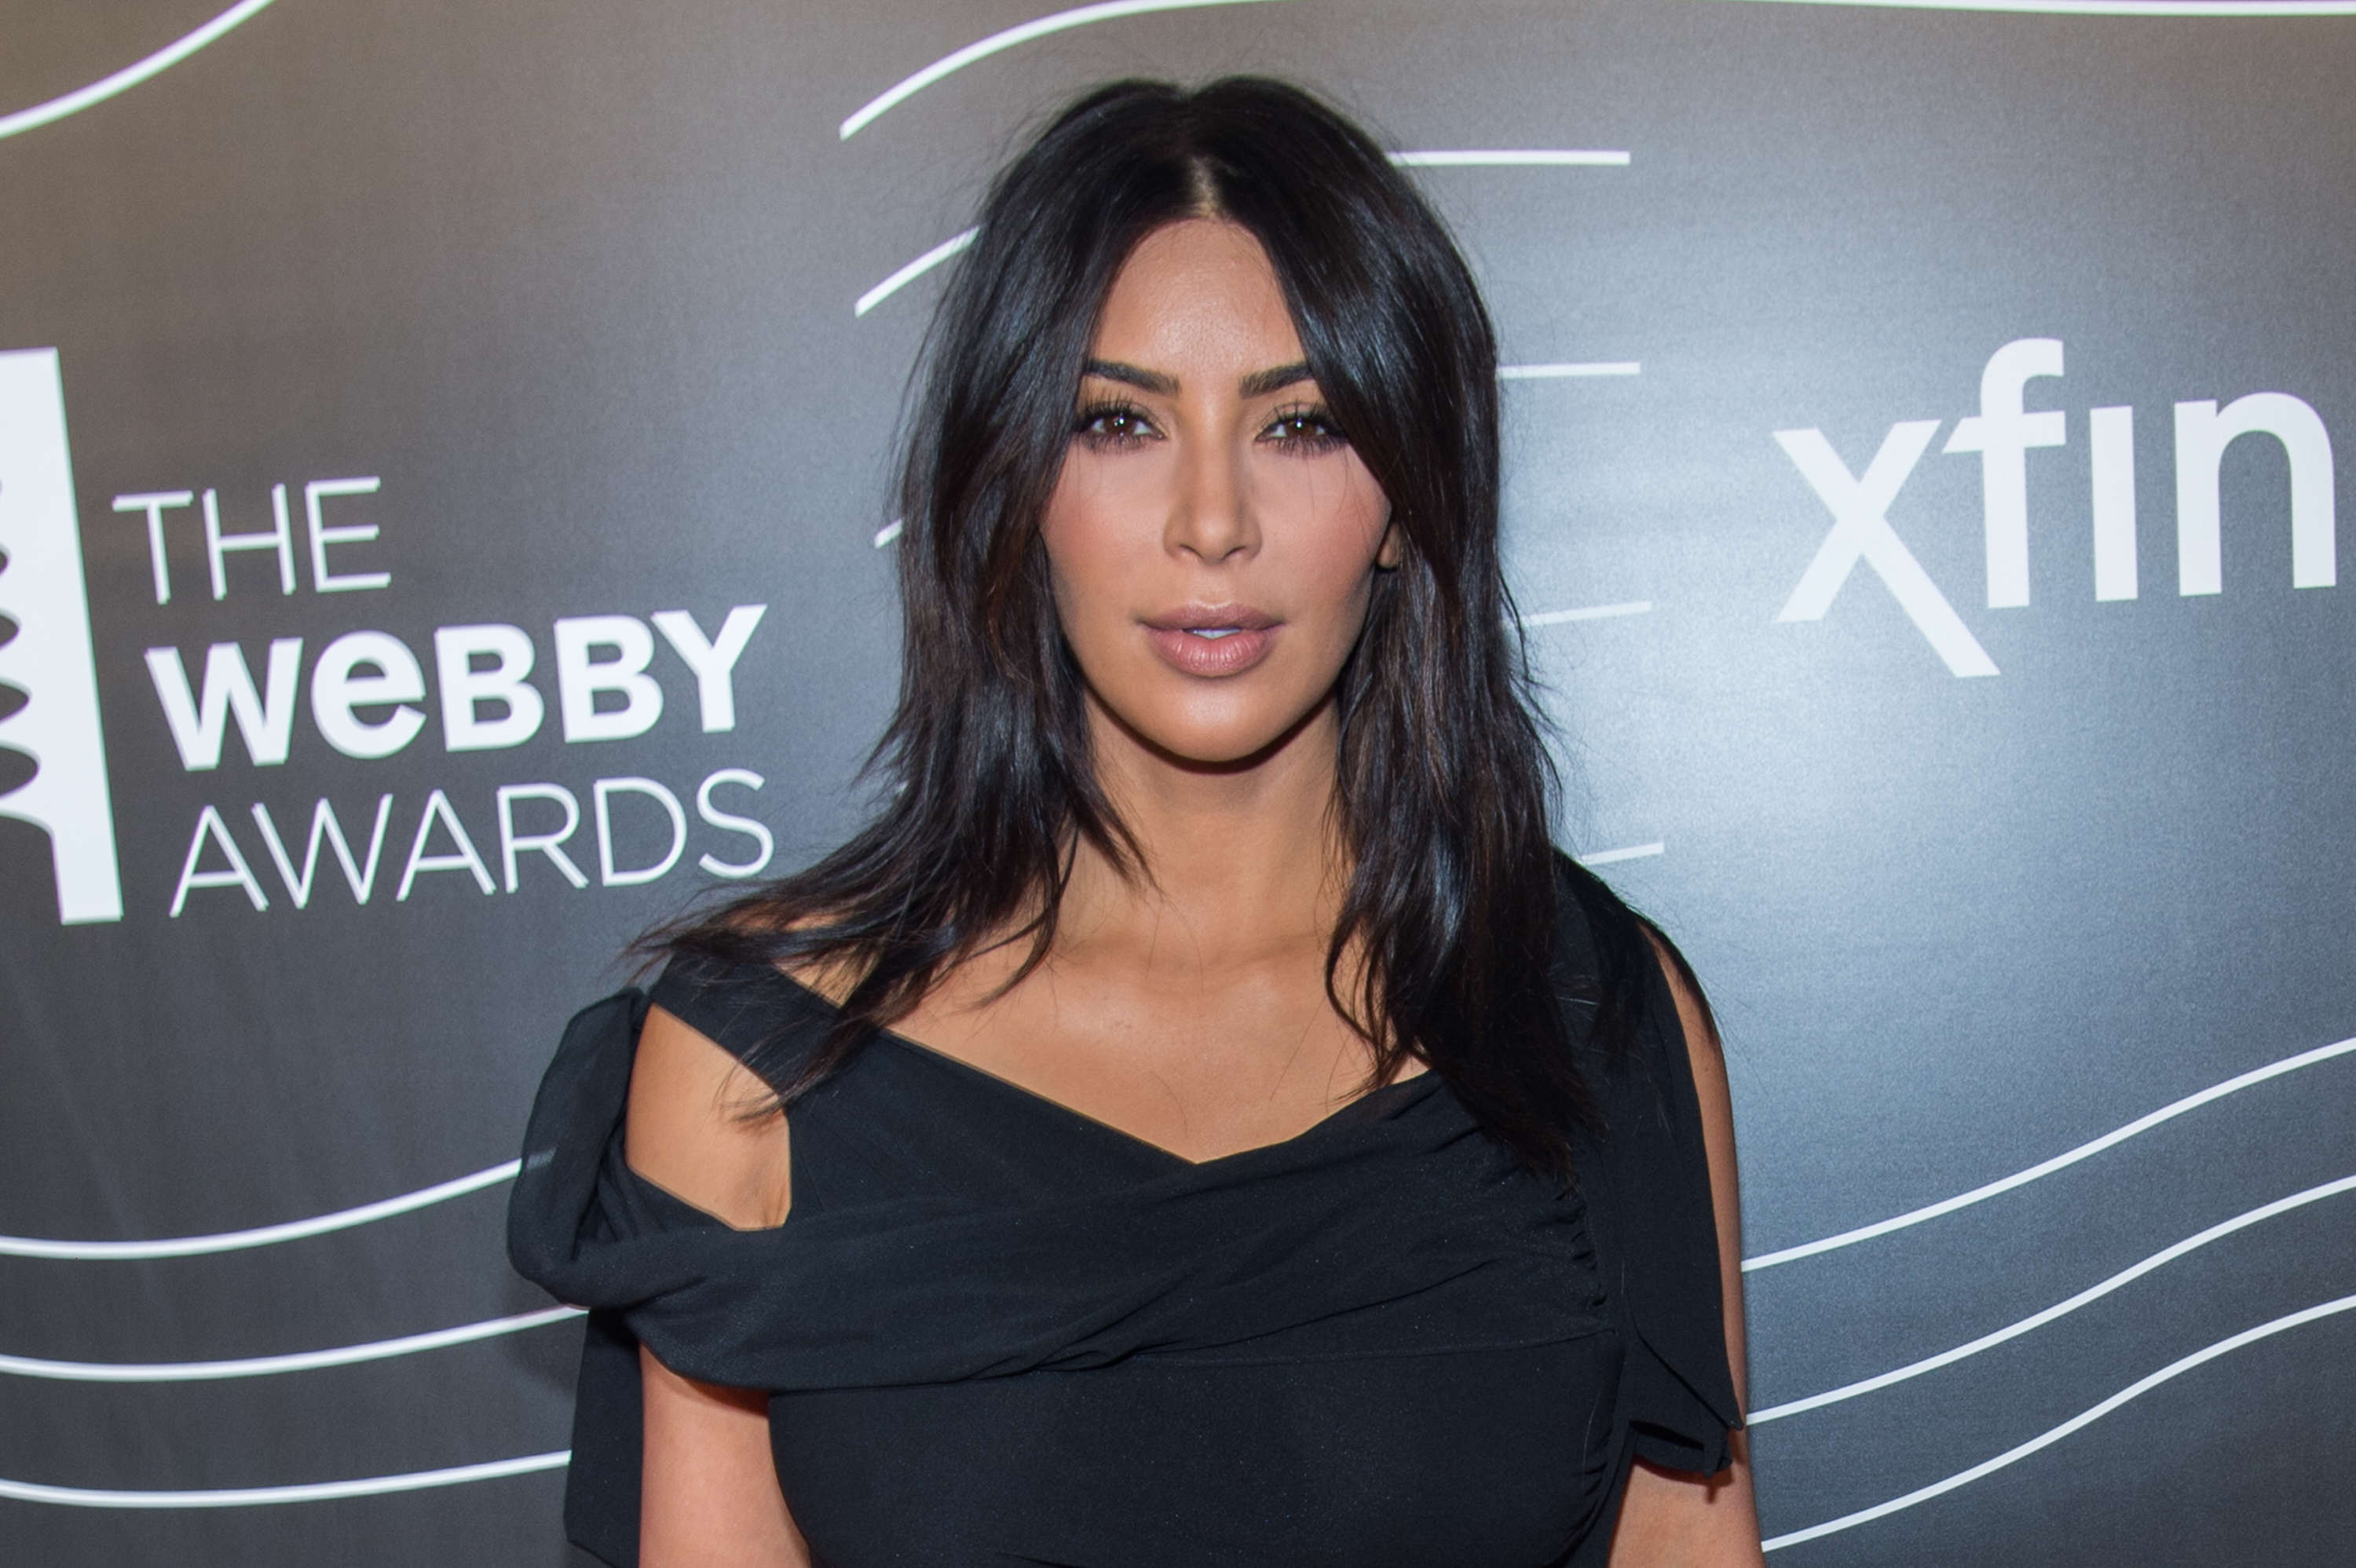 Kim Kardashian Promises To Keep Breaking Internet With Nude Selfies GettyImages 531770198